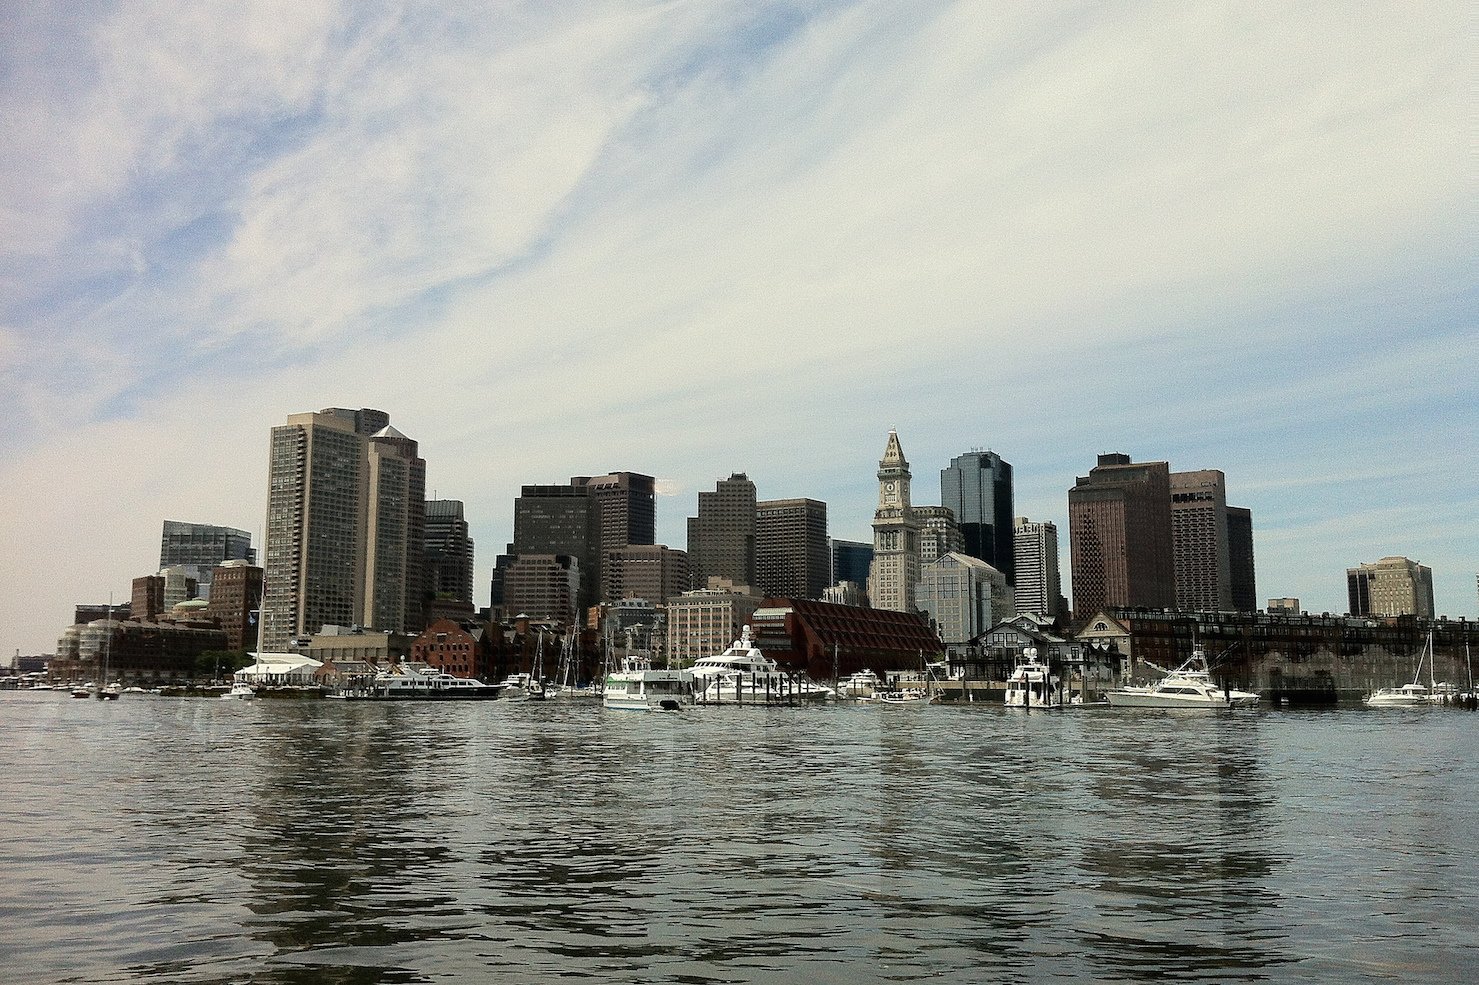 Boston Harbor and downtown Boston (image: Wade Roush)